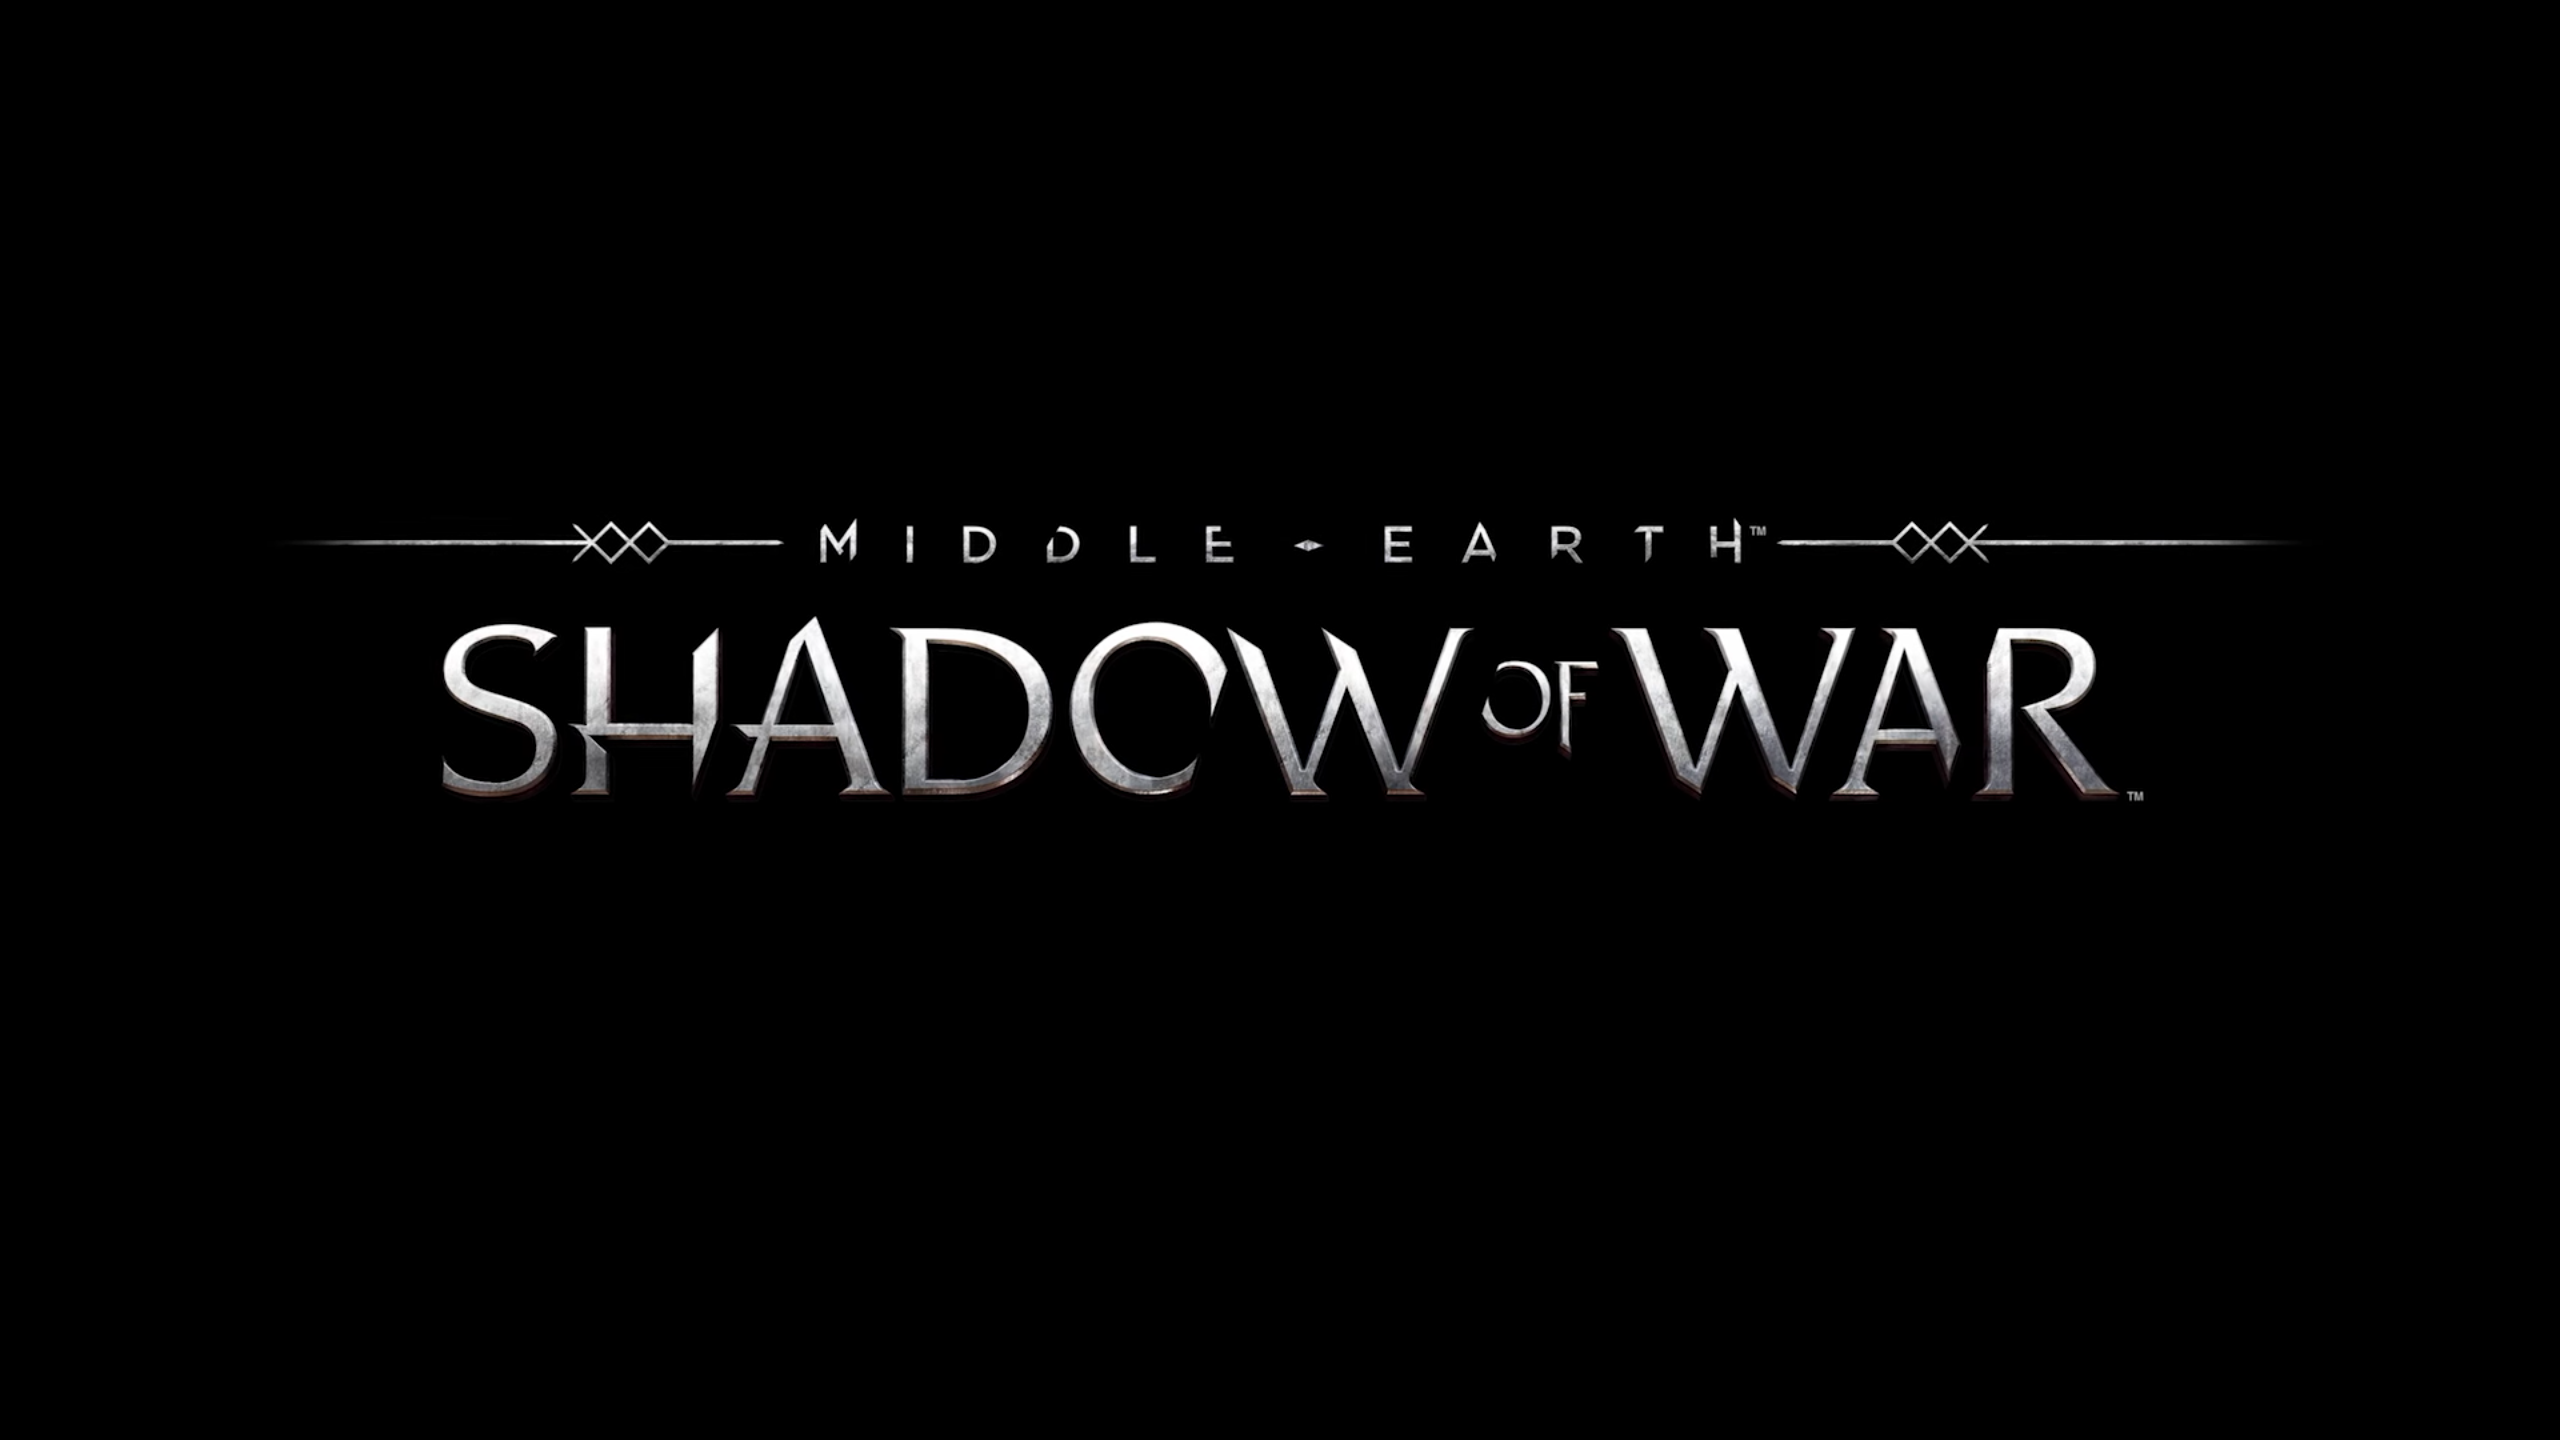 37 Middle Earth Shadow Of War Hd Wallpapers Background Images